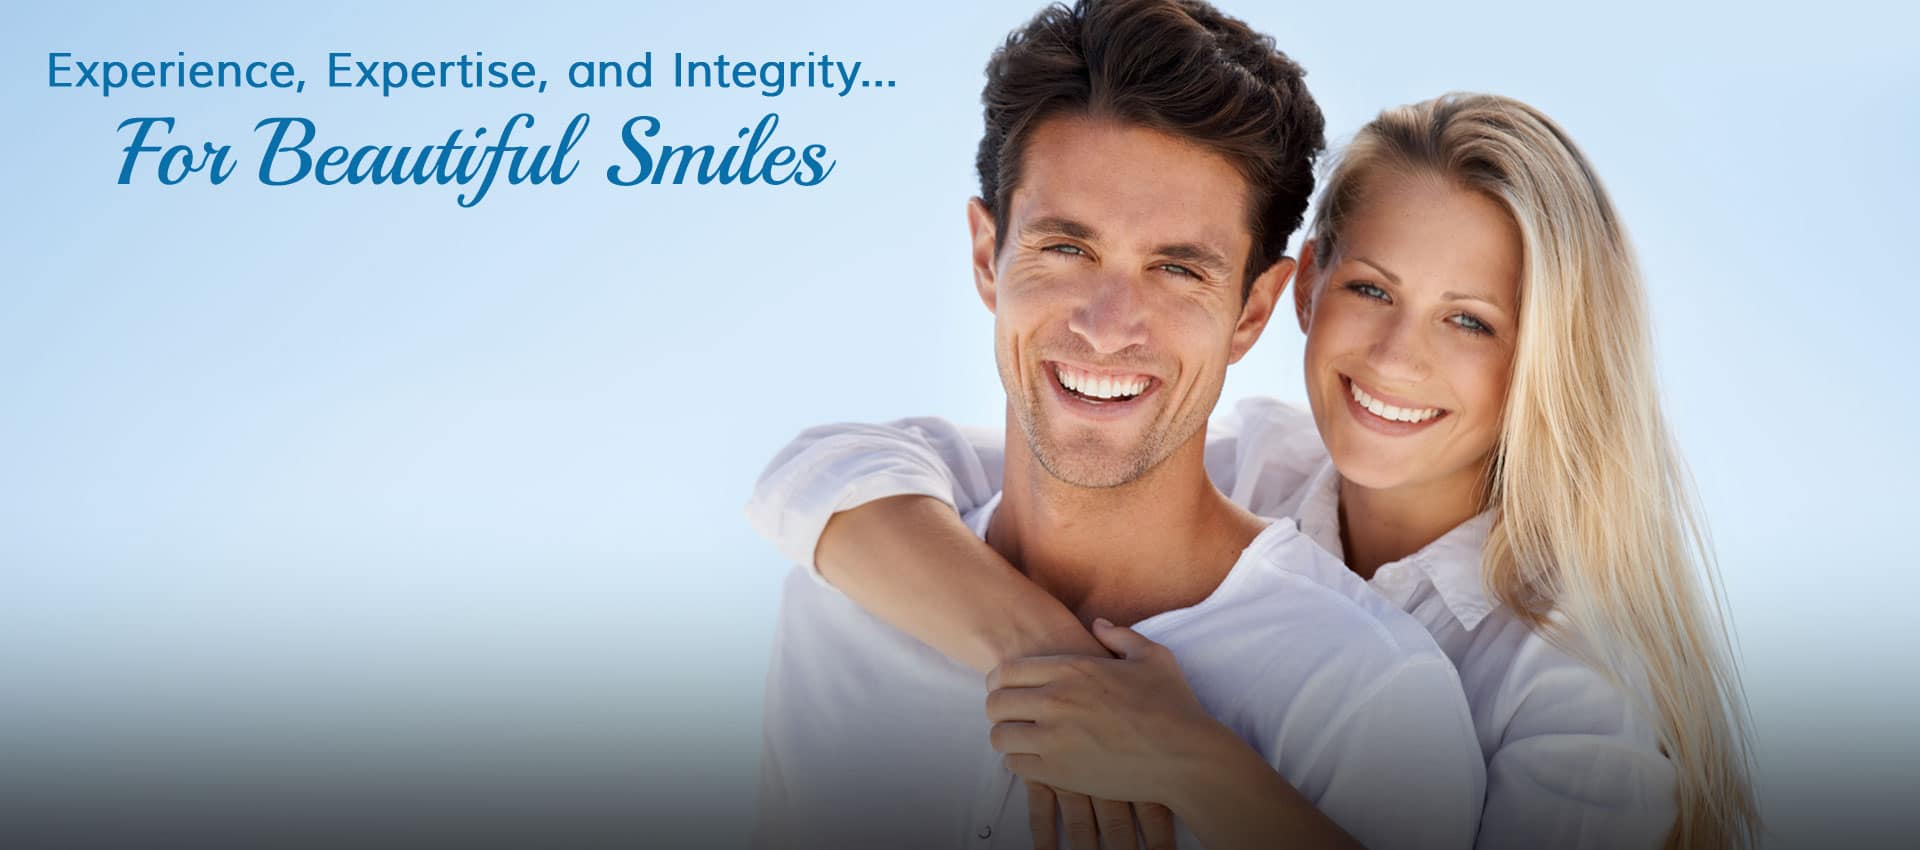 Experience, Expertise and Integrity for Beautiful Smiles at Britto Orthodontics in Chantilly and Woodbridge VA